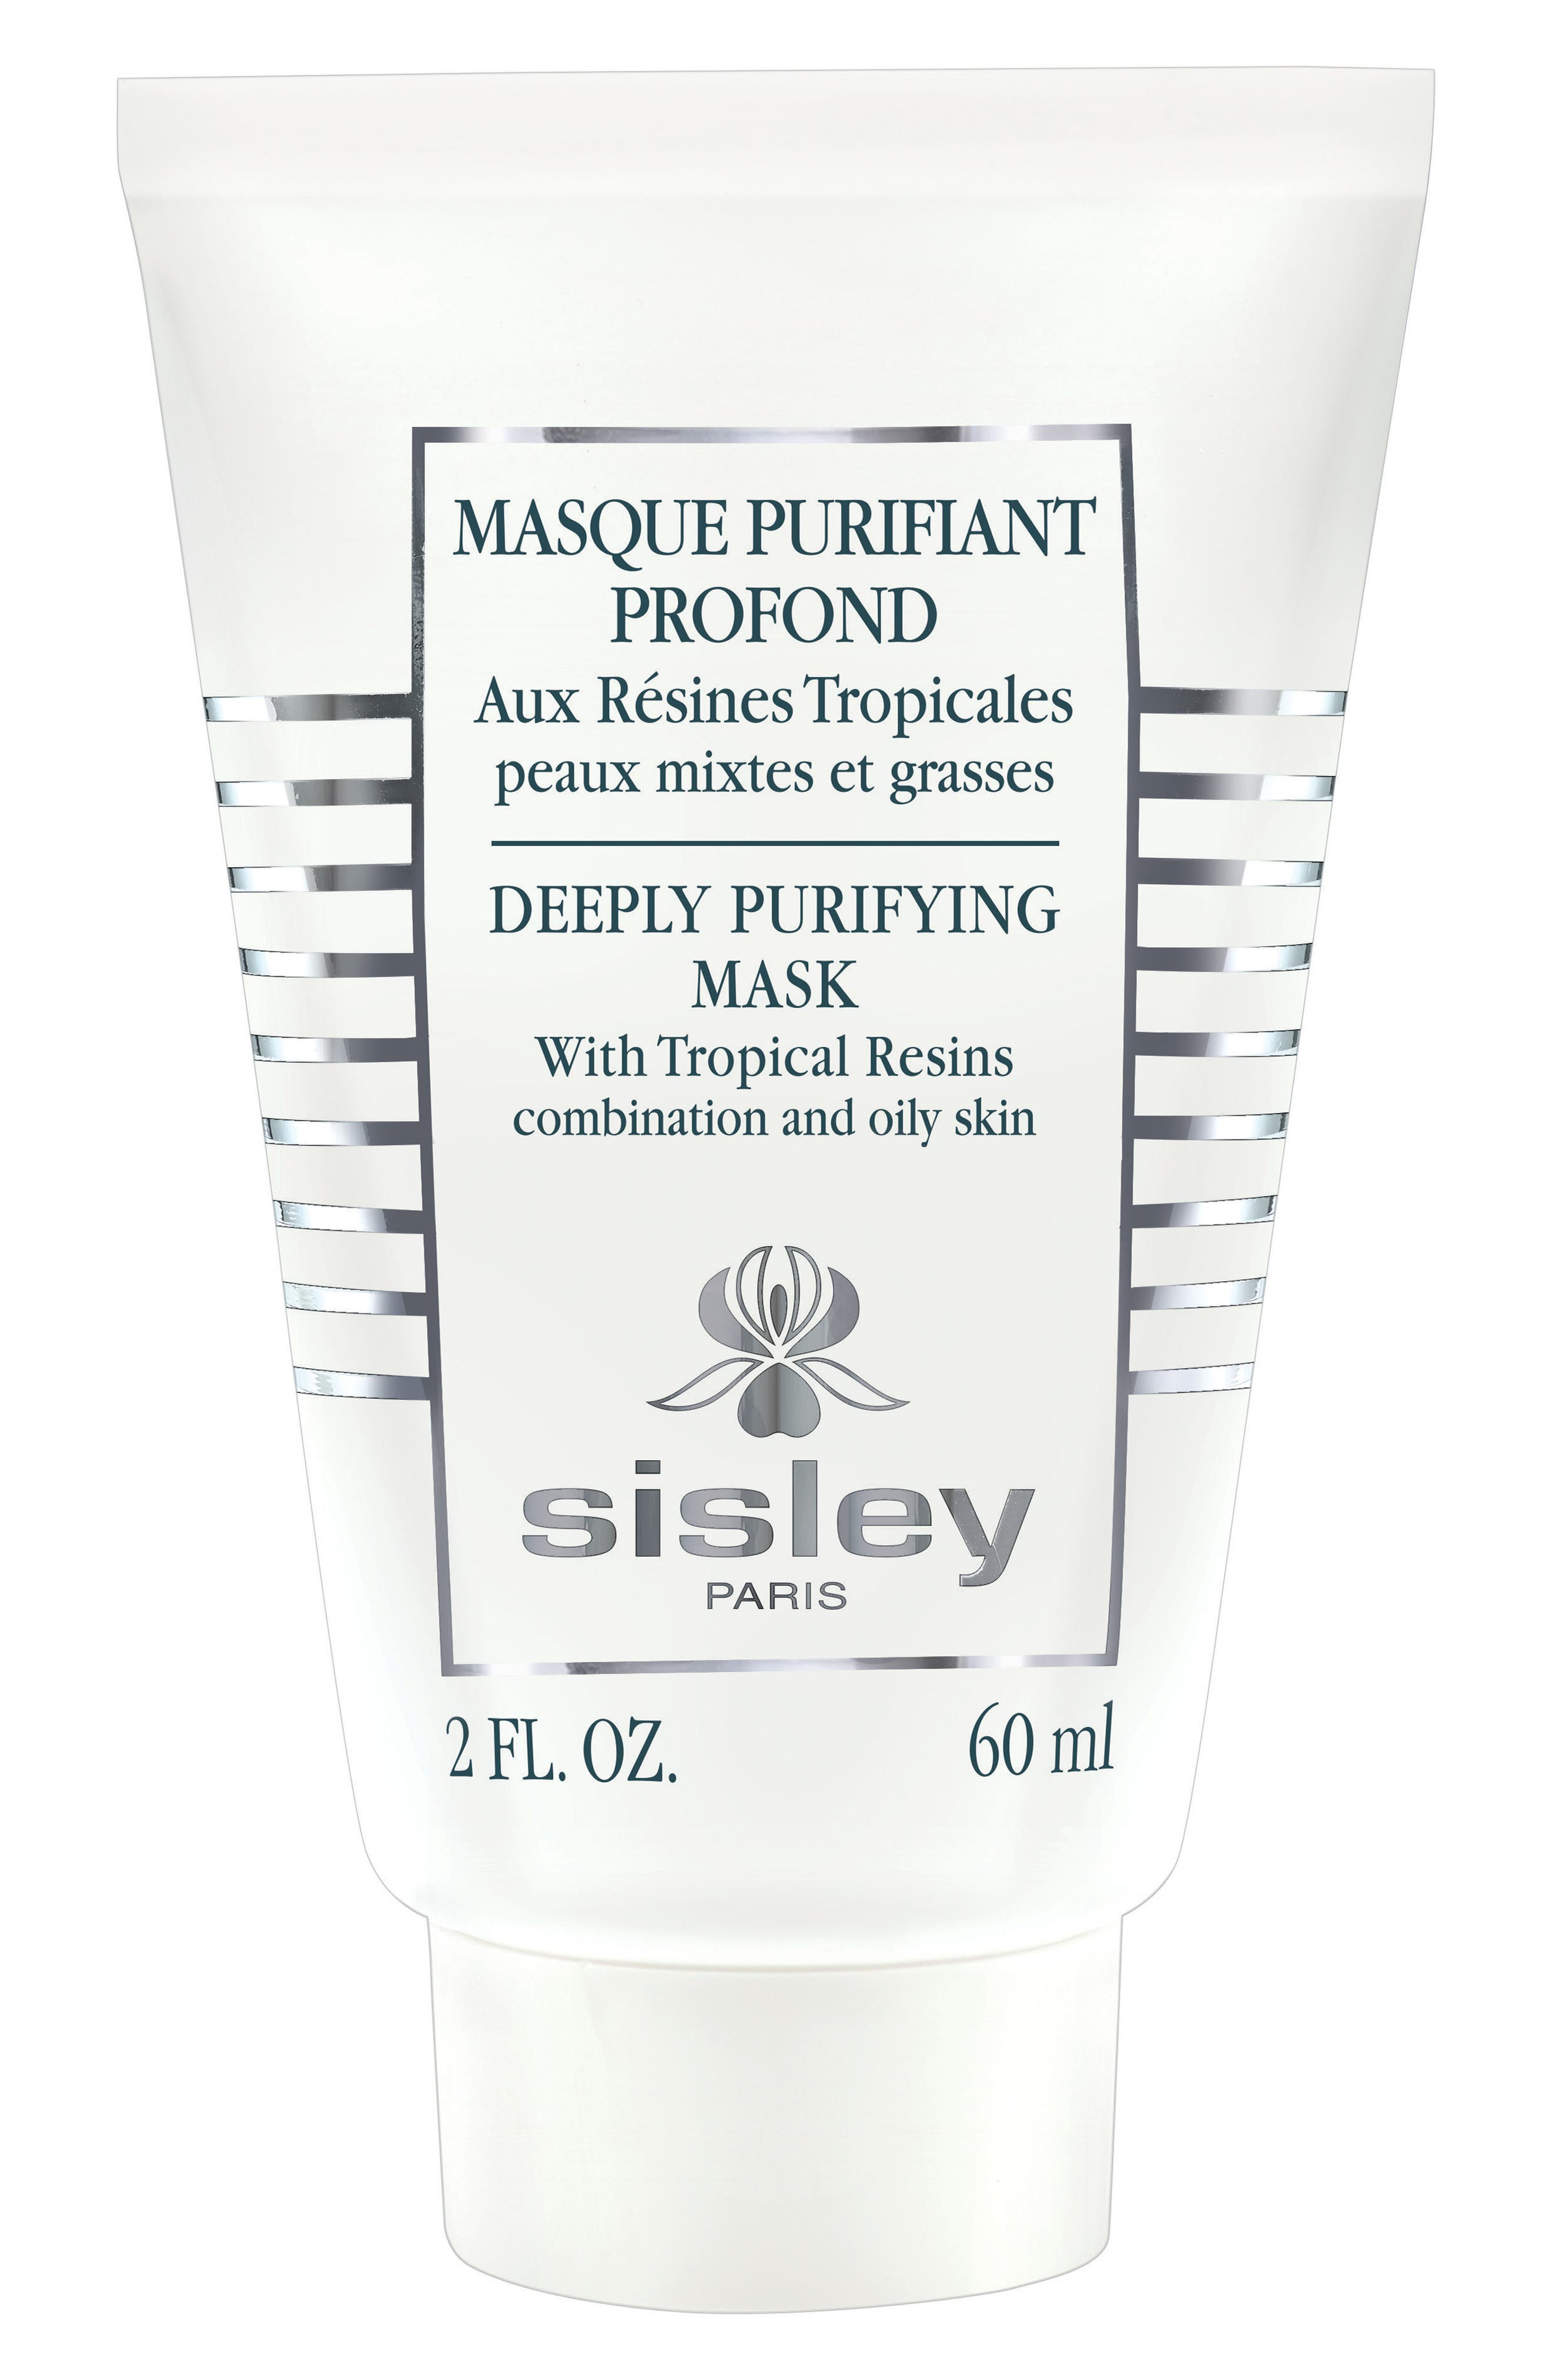 Sisley Paris Deeply Purifying Mask with Tropical Resins